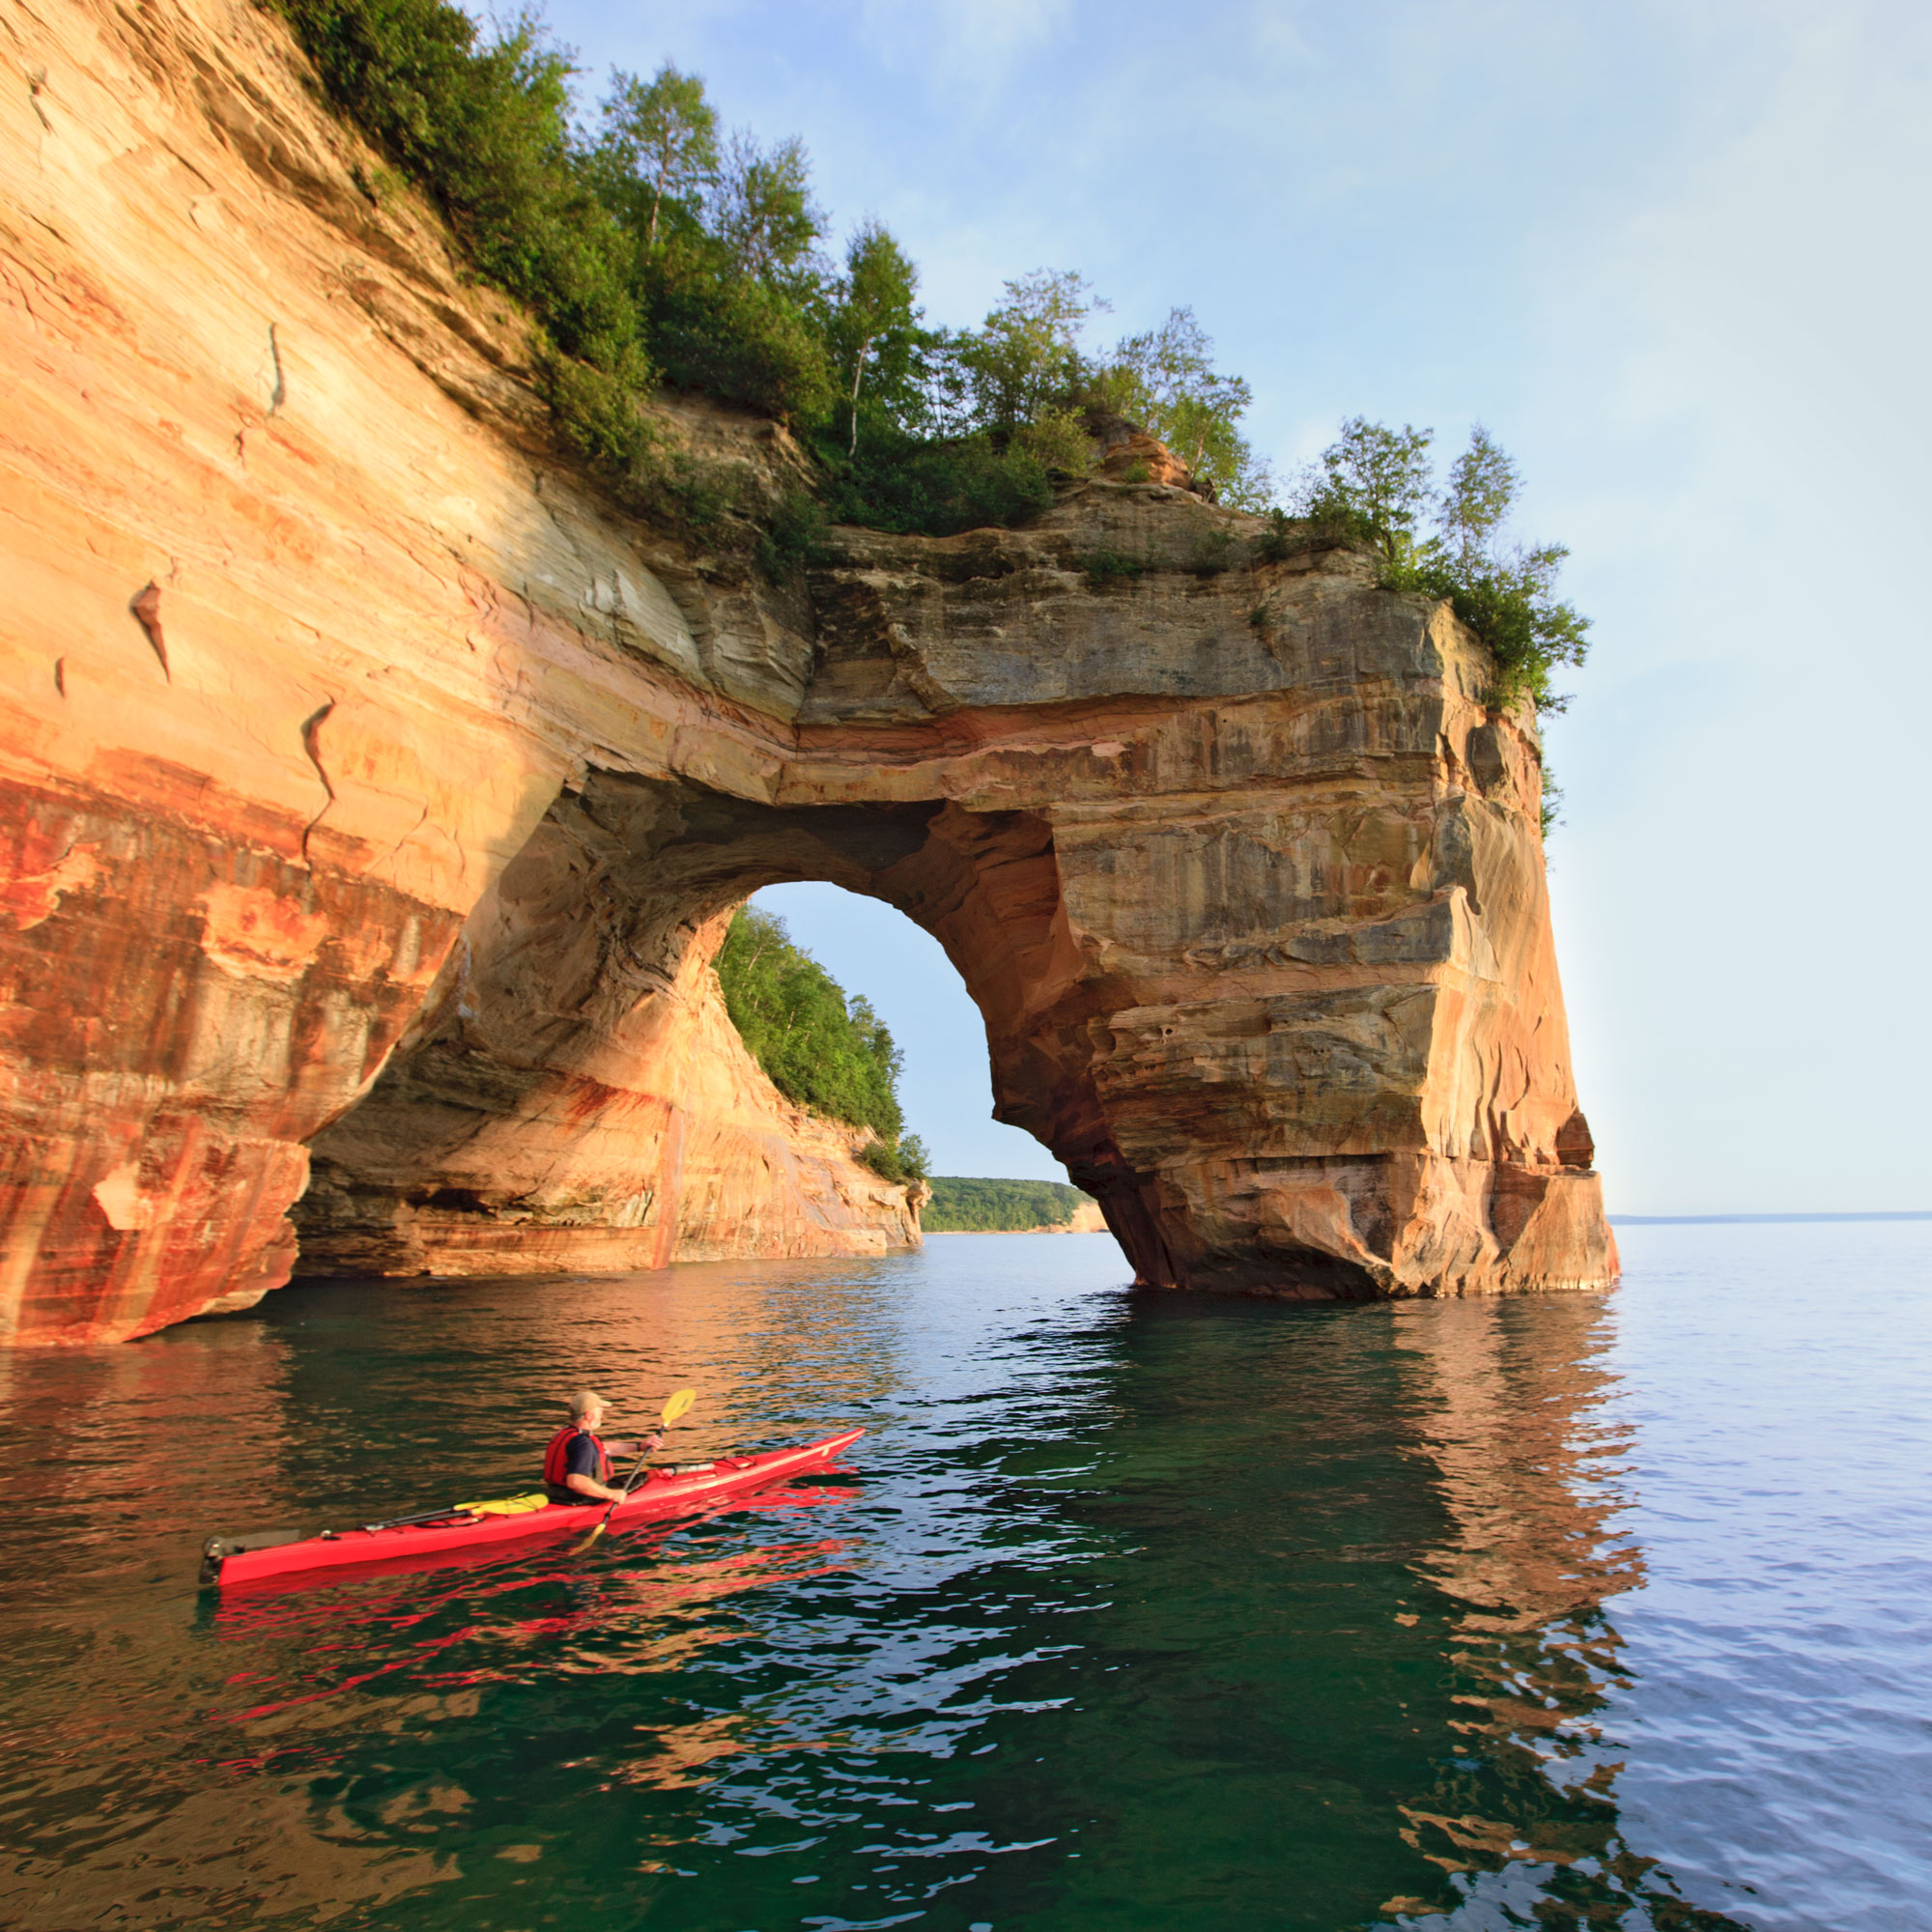 Wellness—Places to Paddle: Apostle Islands National Lakeshore